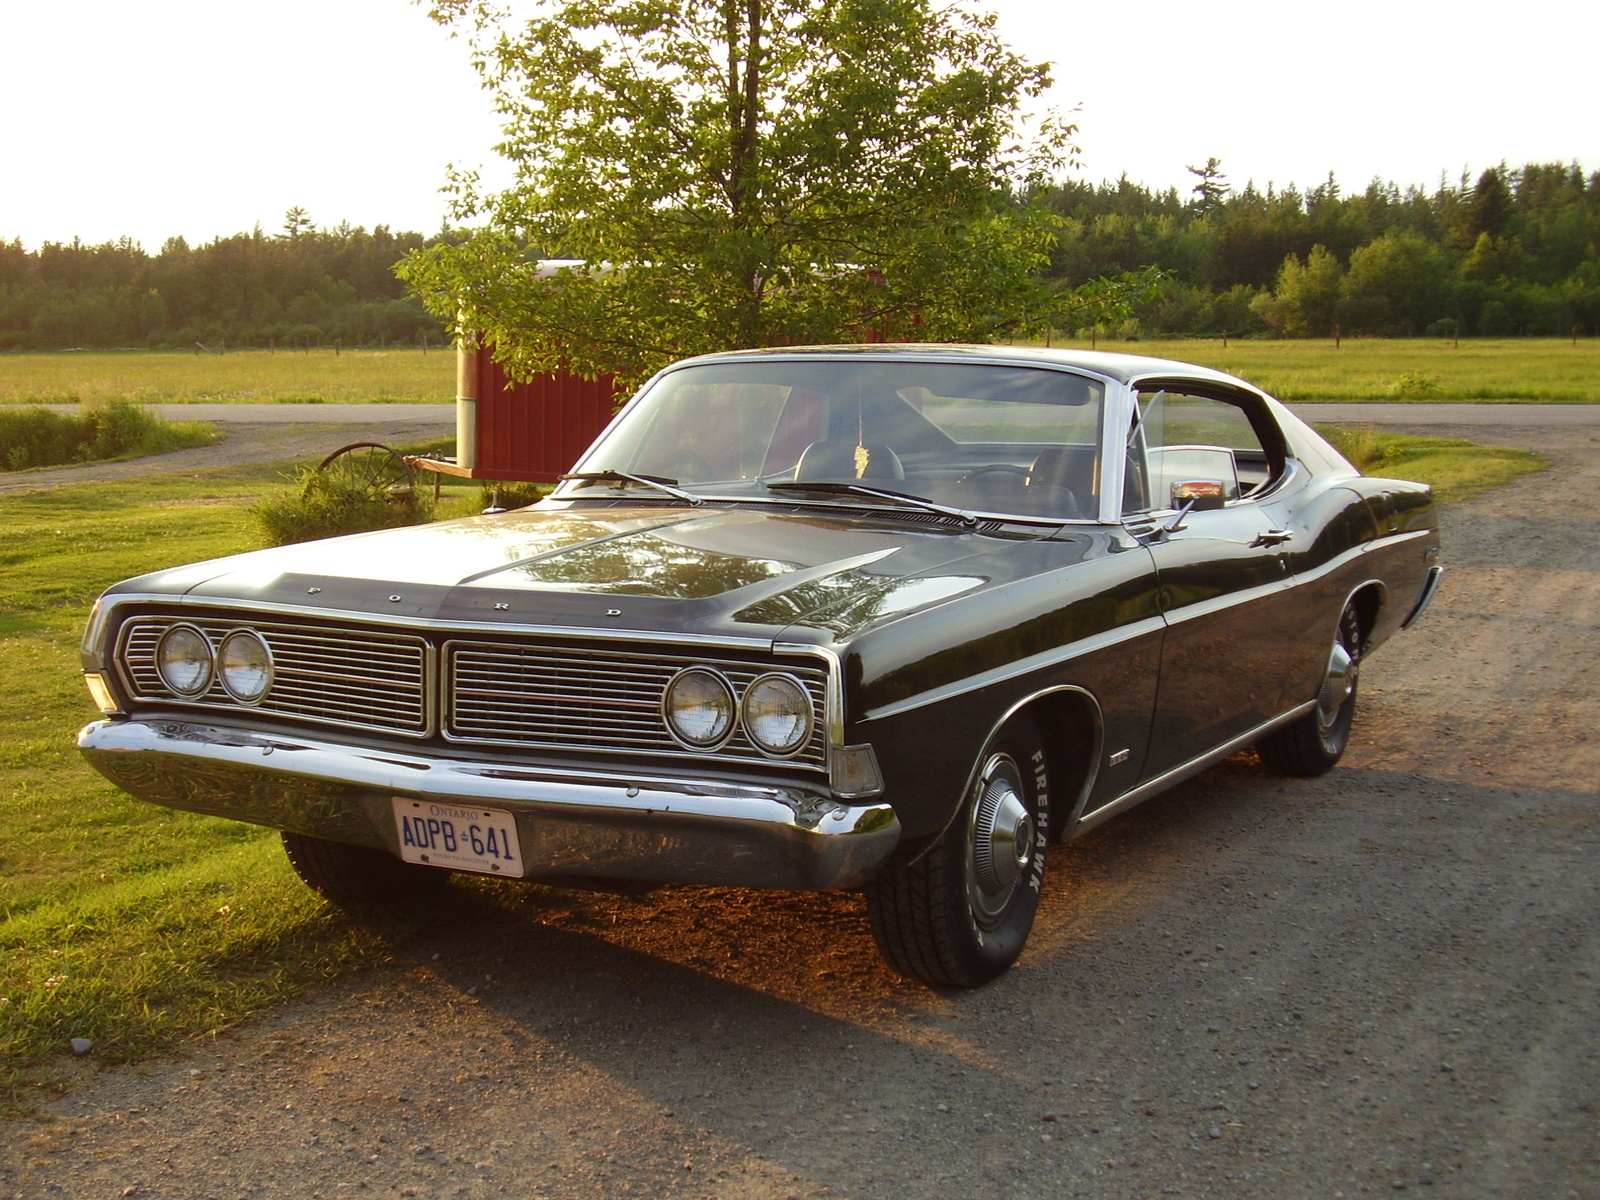 Ford Galaxy 1969 Review Amazing Pictures And Images Look At The Car Crown Victoria Photo 9